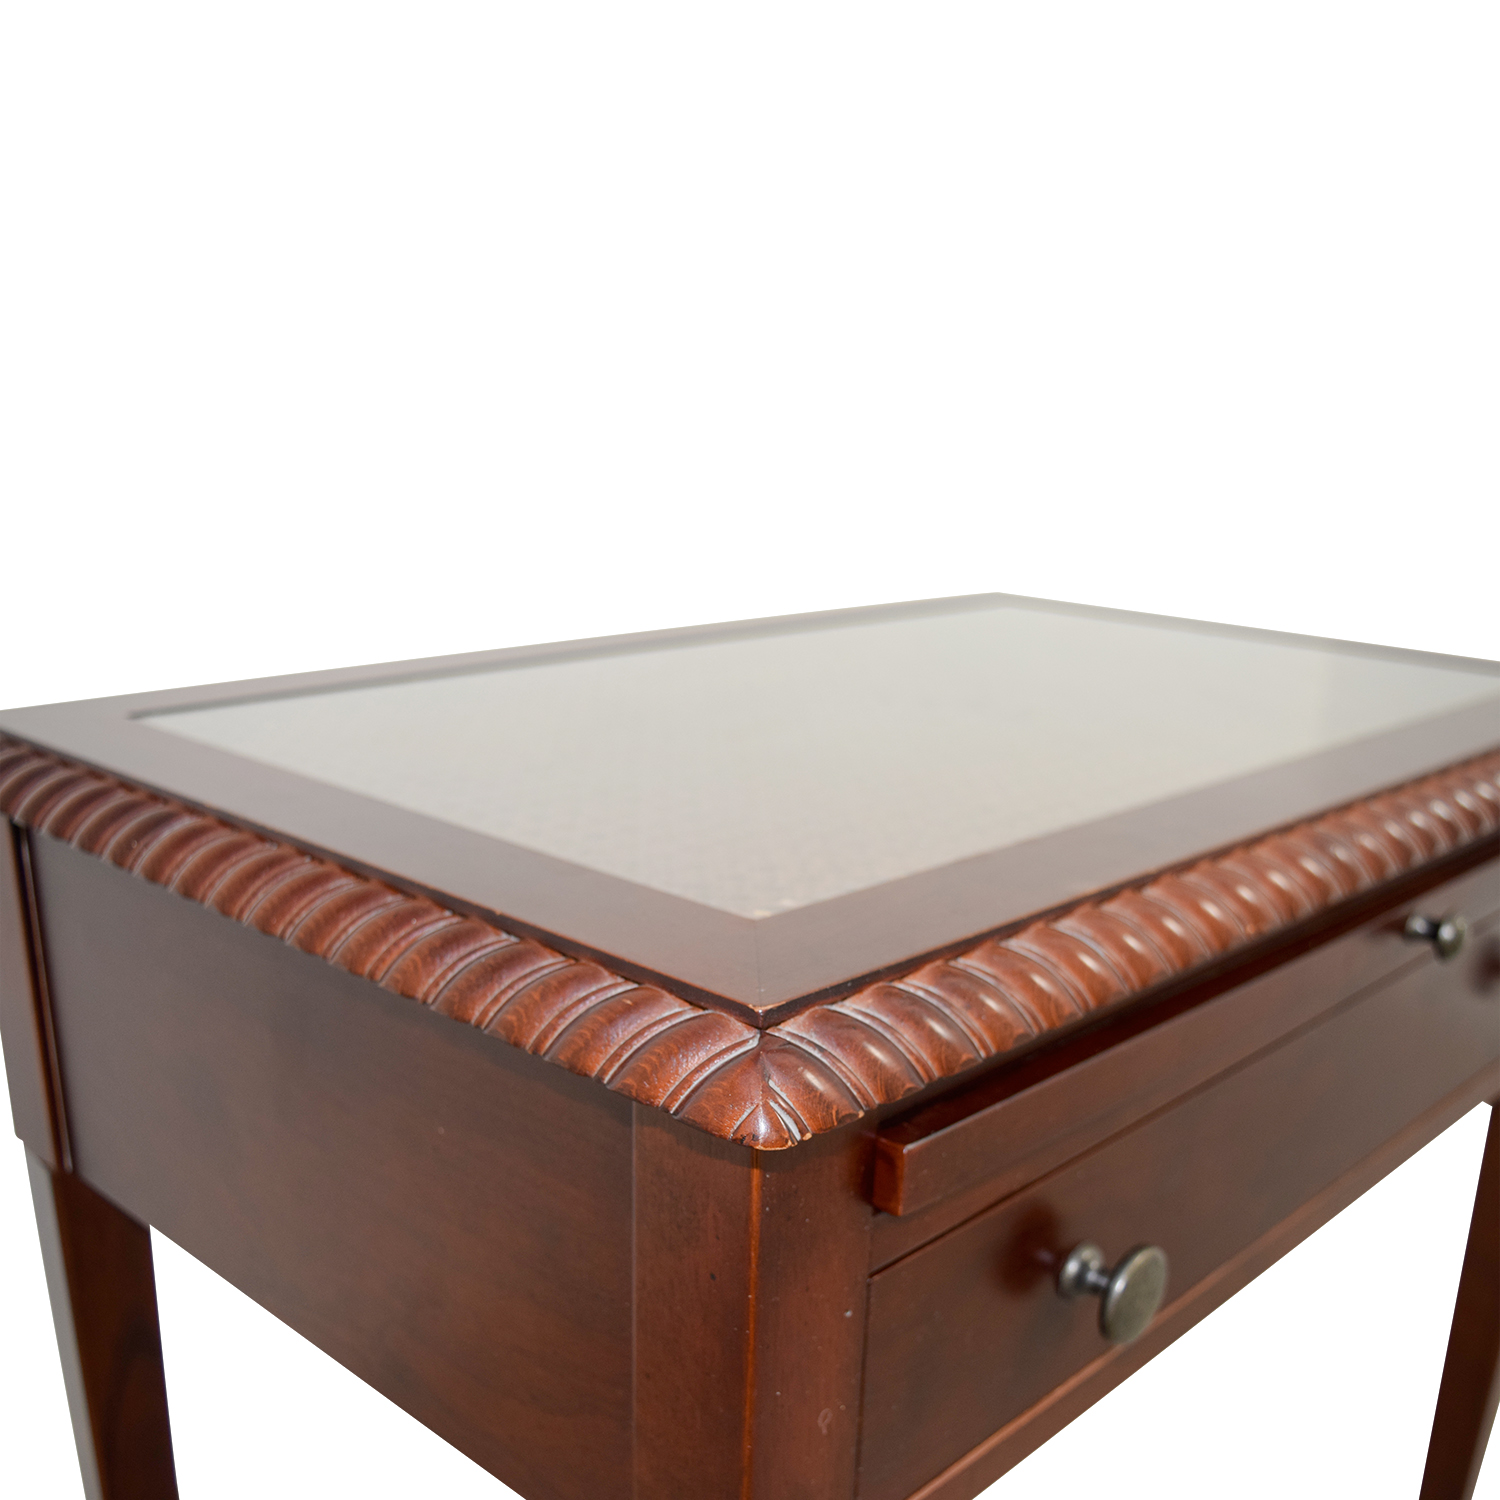 Remarkable 52 Off Bombay Company Bombay Single Drawer With Tray Glass Top Table Tables Beatyapartments Chair Design Images Beatyapartmentscom